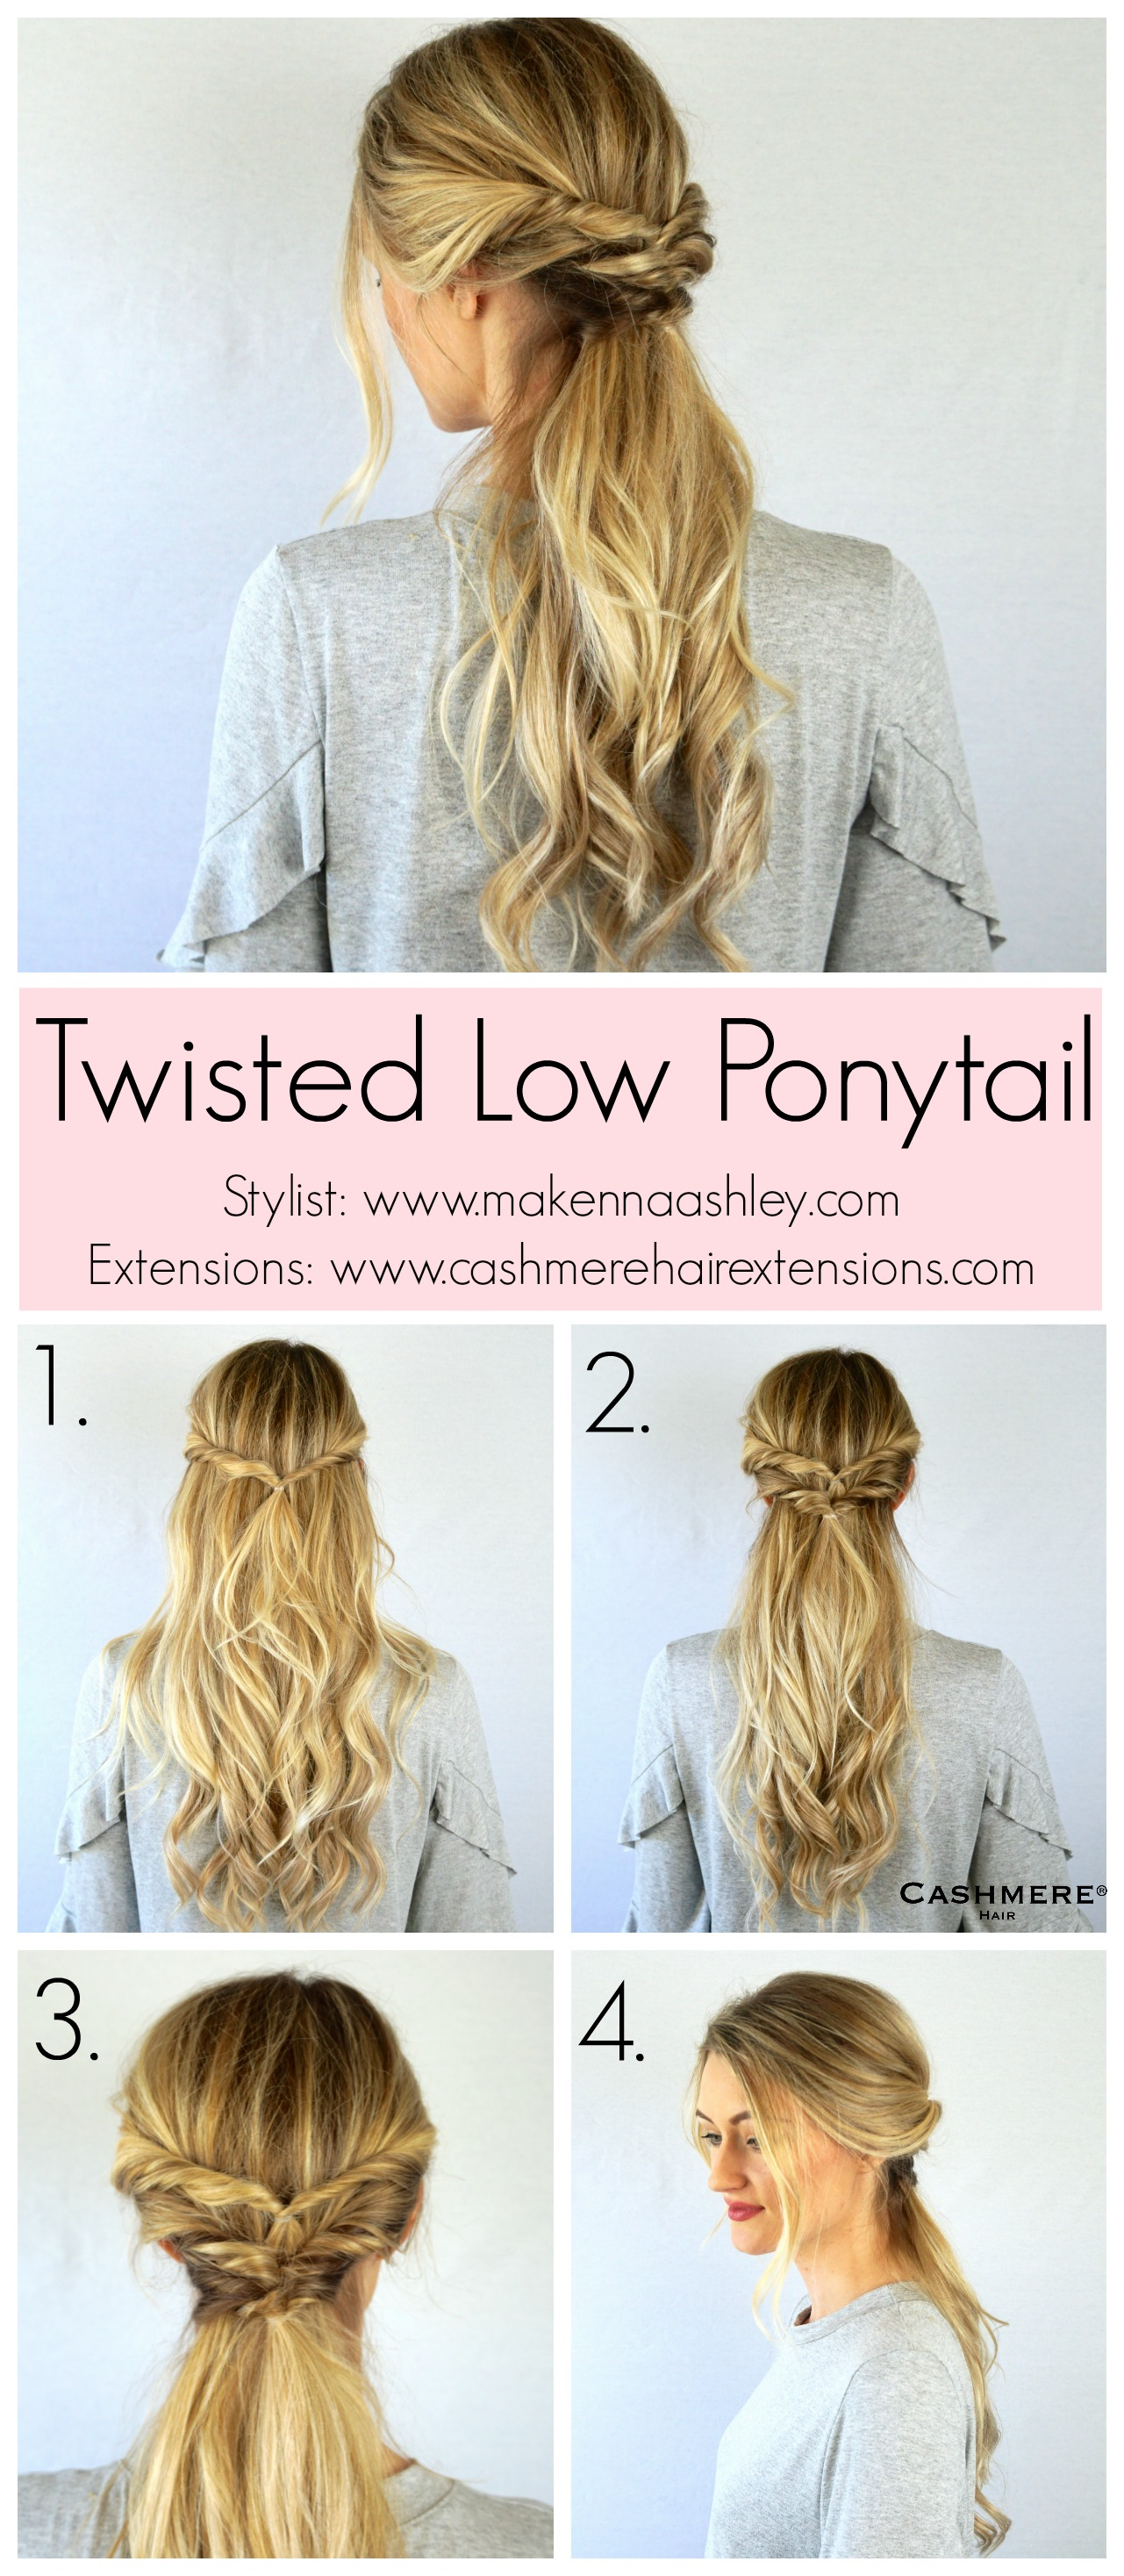 Elegant Twisted Low Ponytail